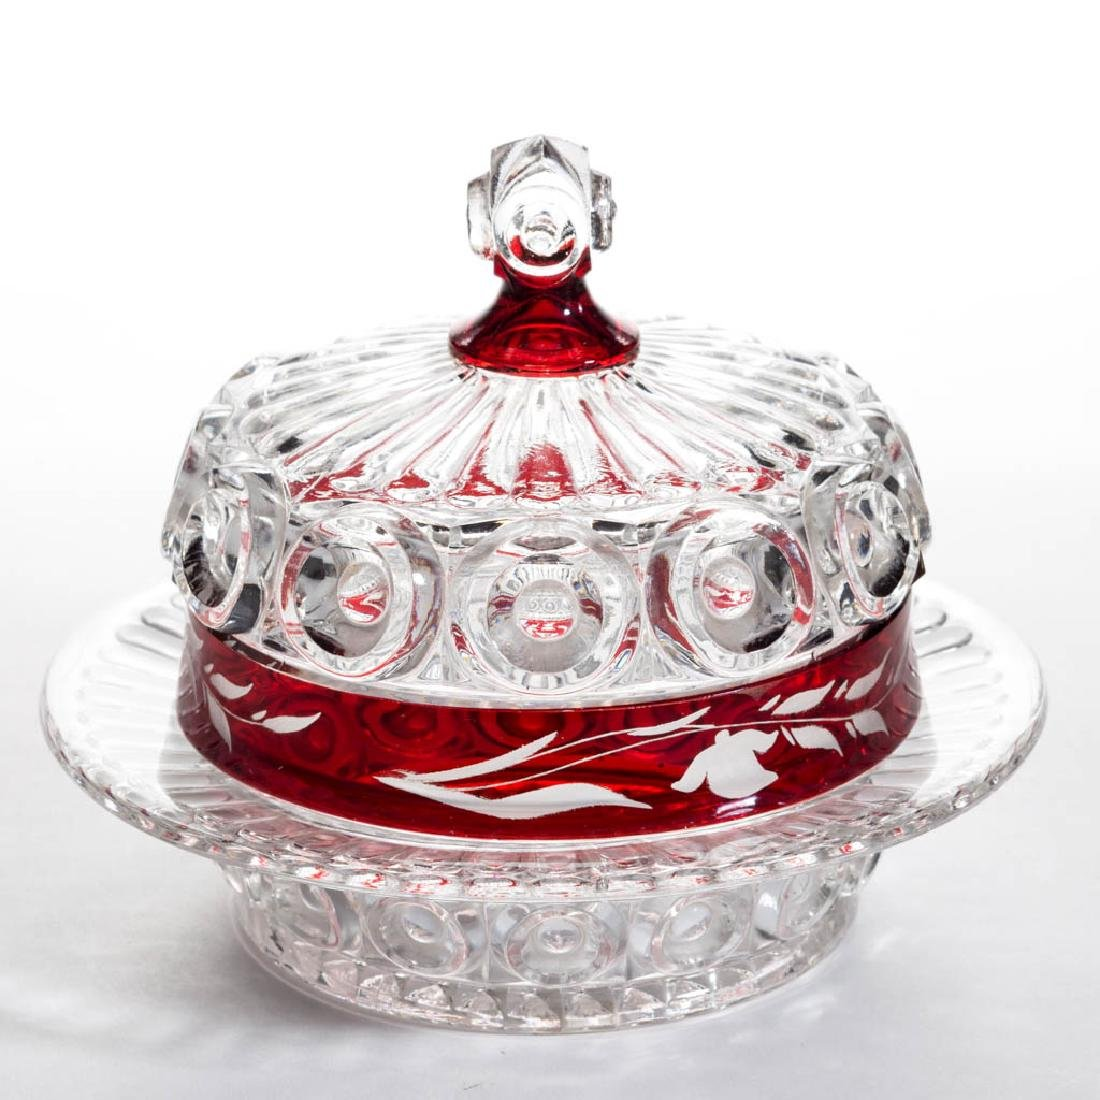 CO-OP'S ROYAL - RUBY-STAINED COVERED BUTTER DISH